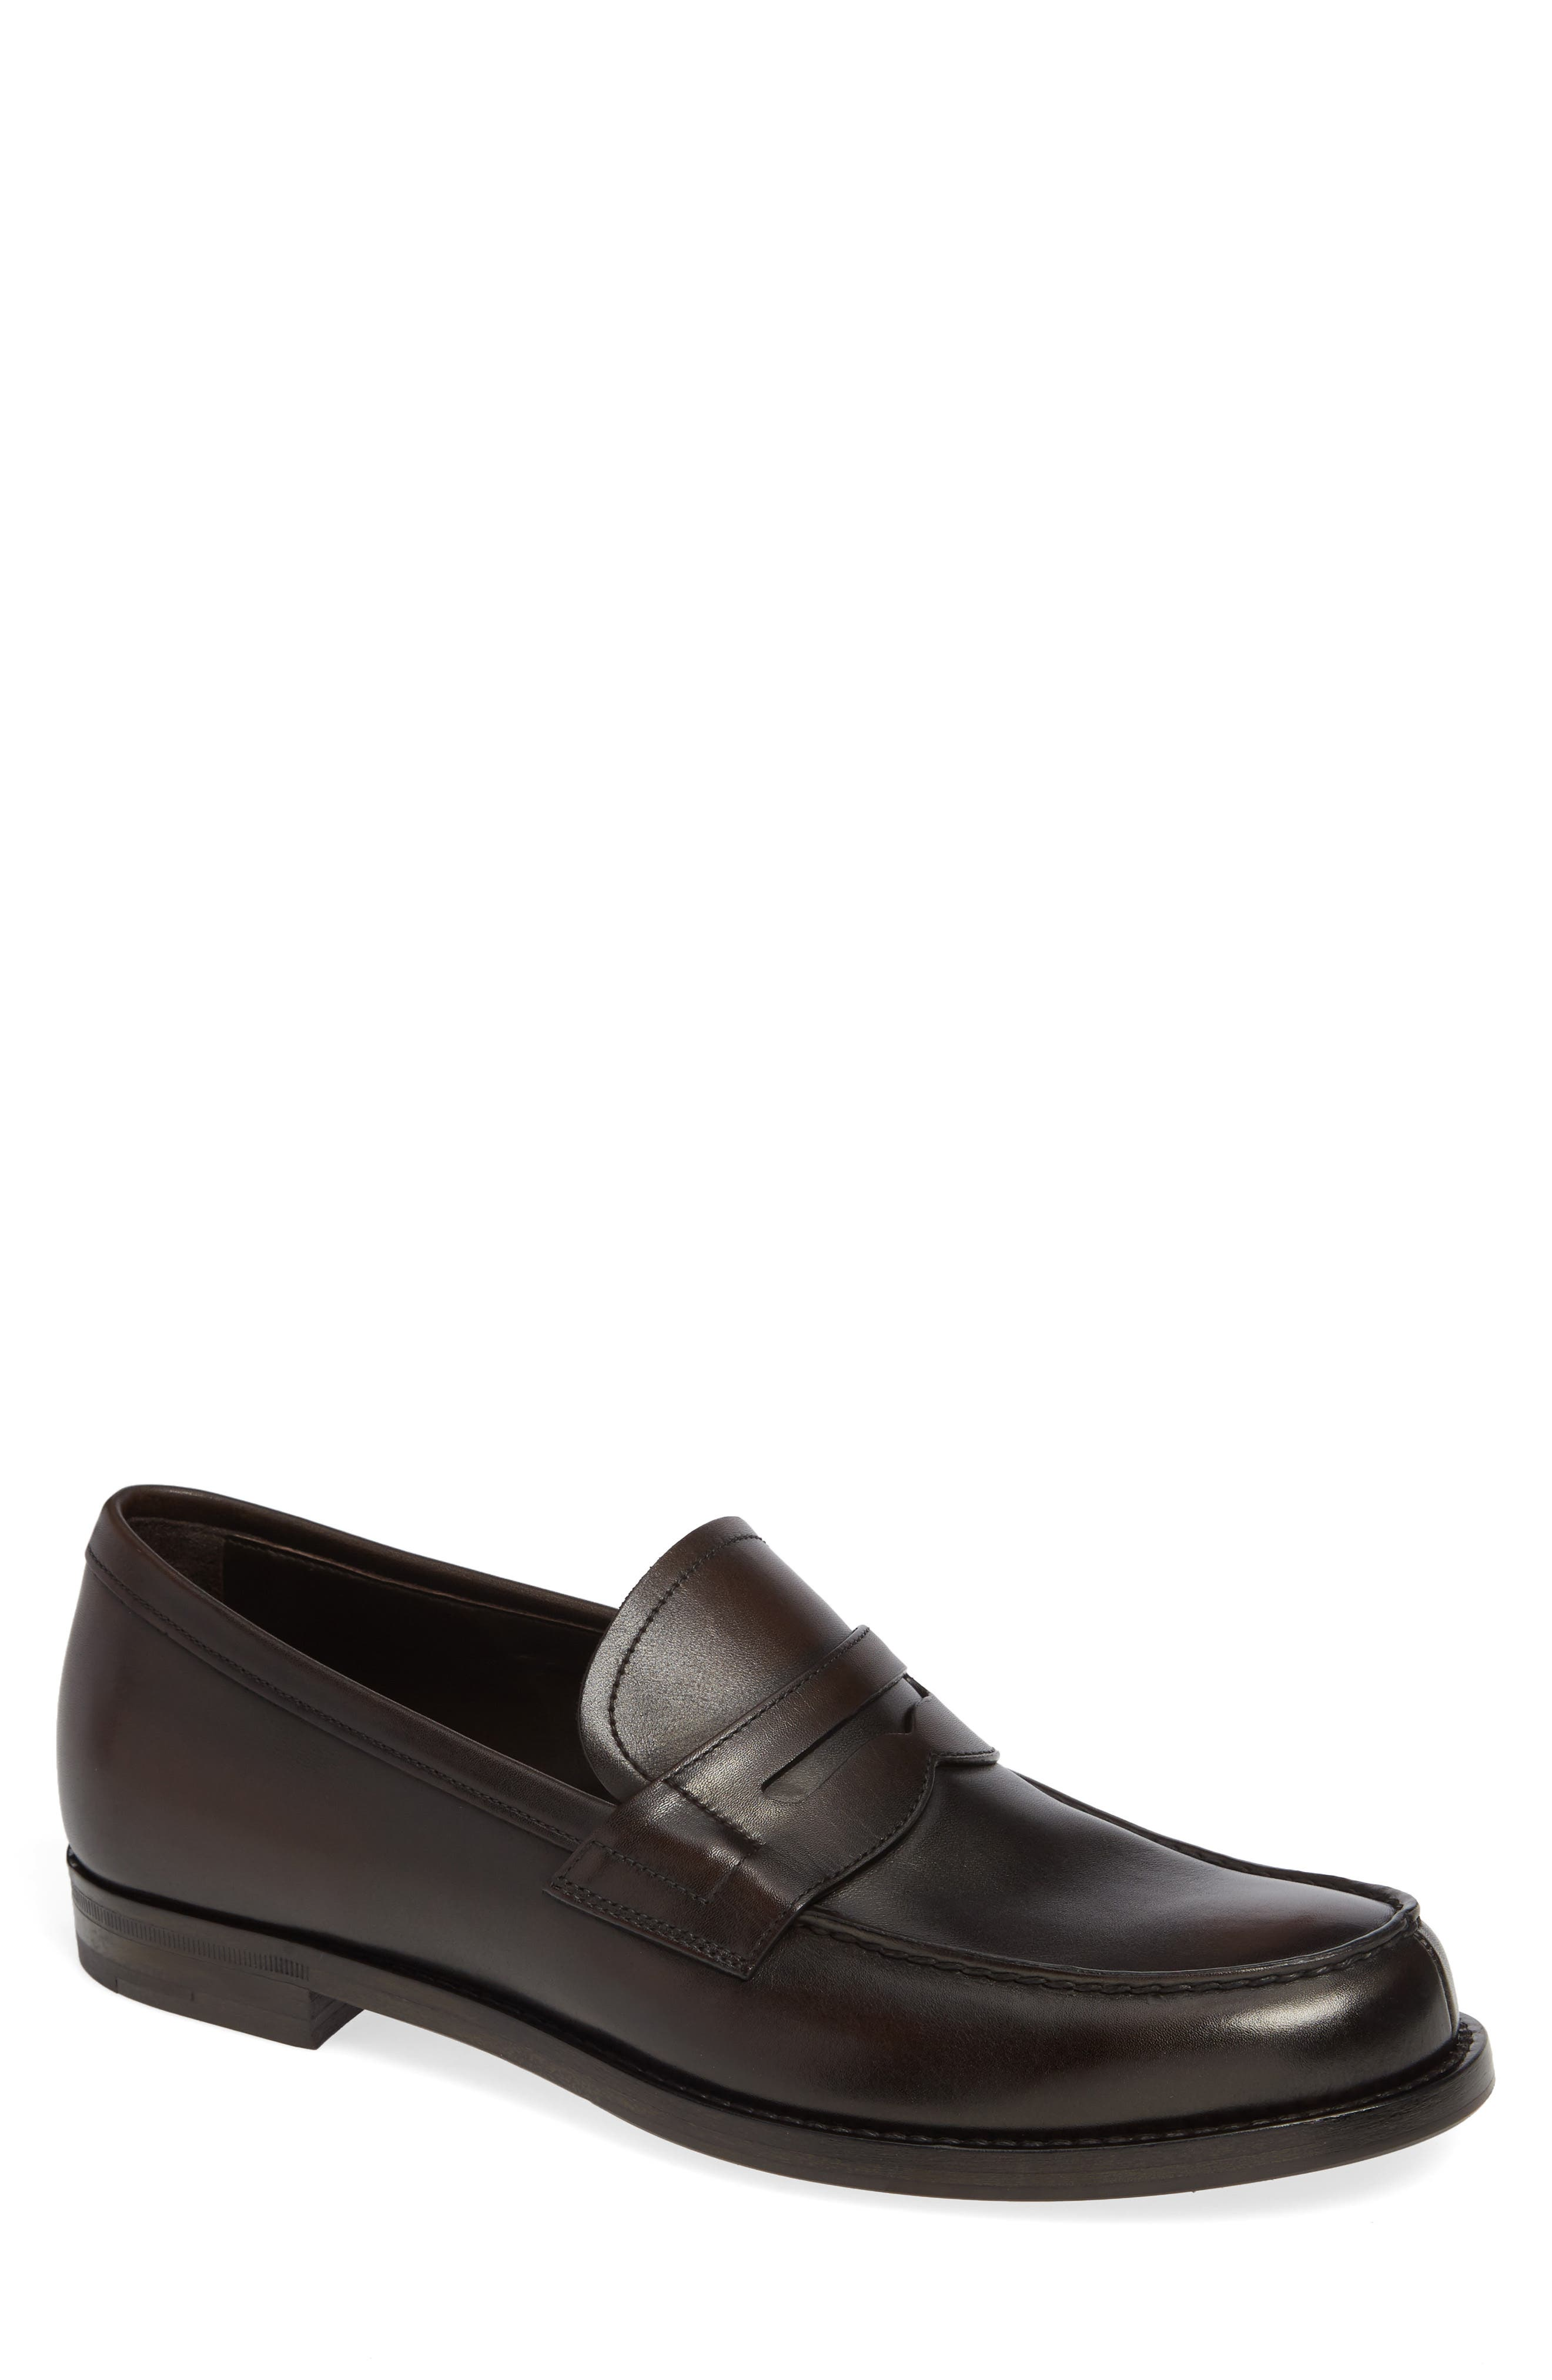 Penny Loafer,                         Main,                         color, MORO BROWN